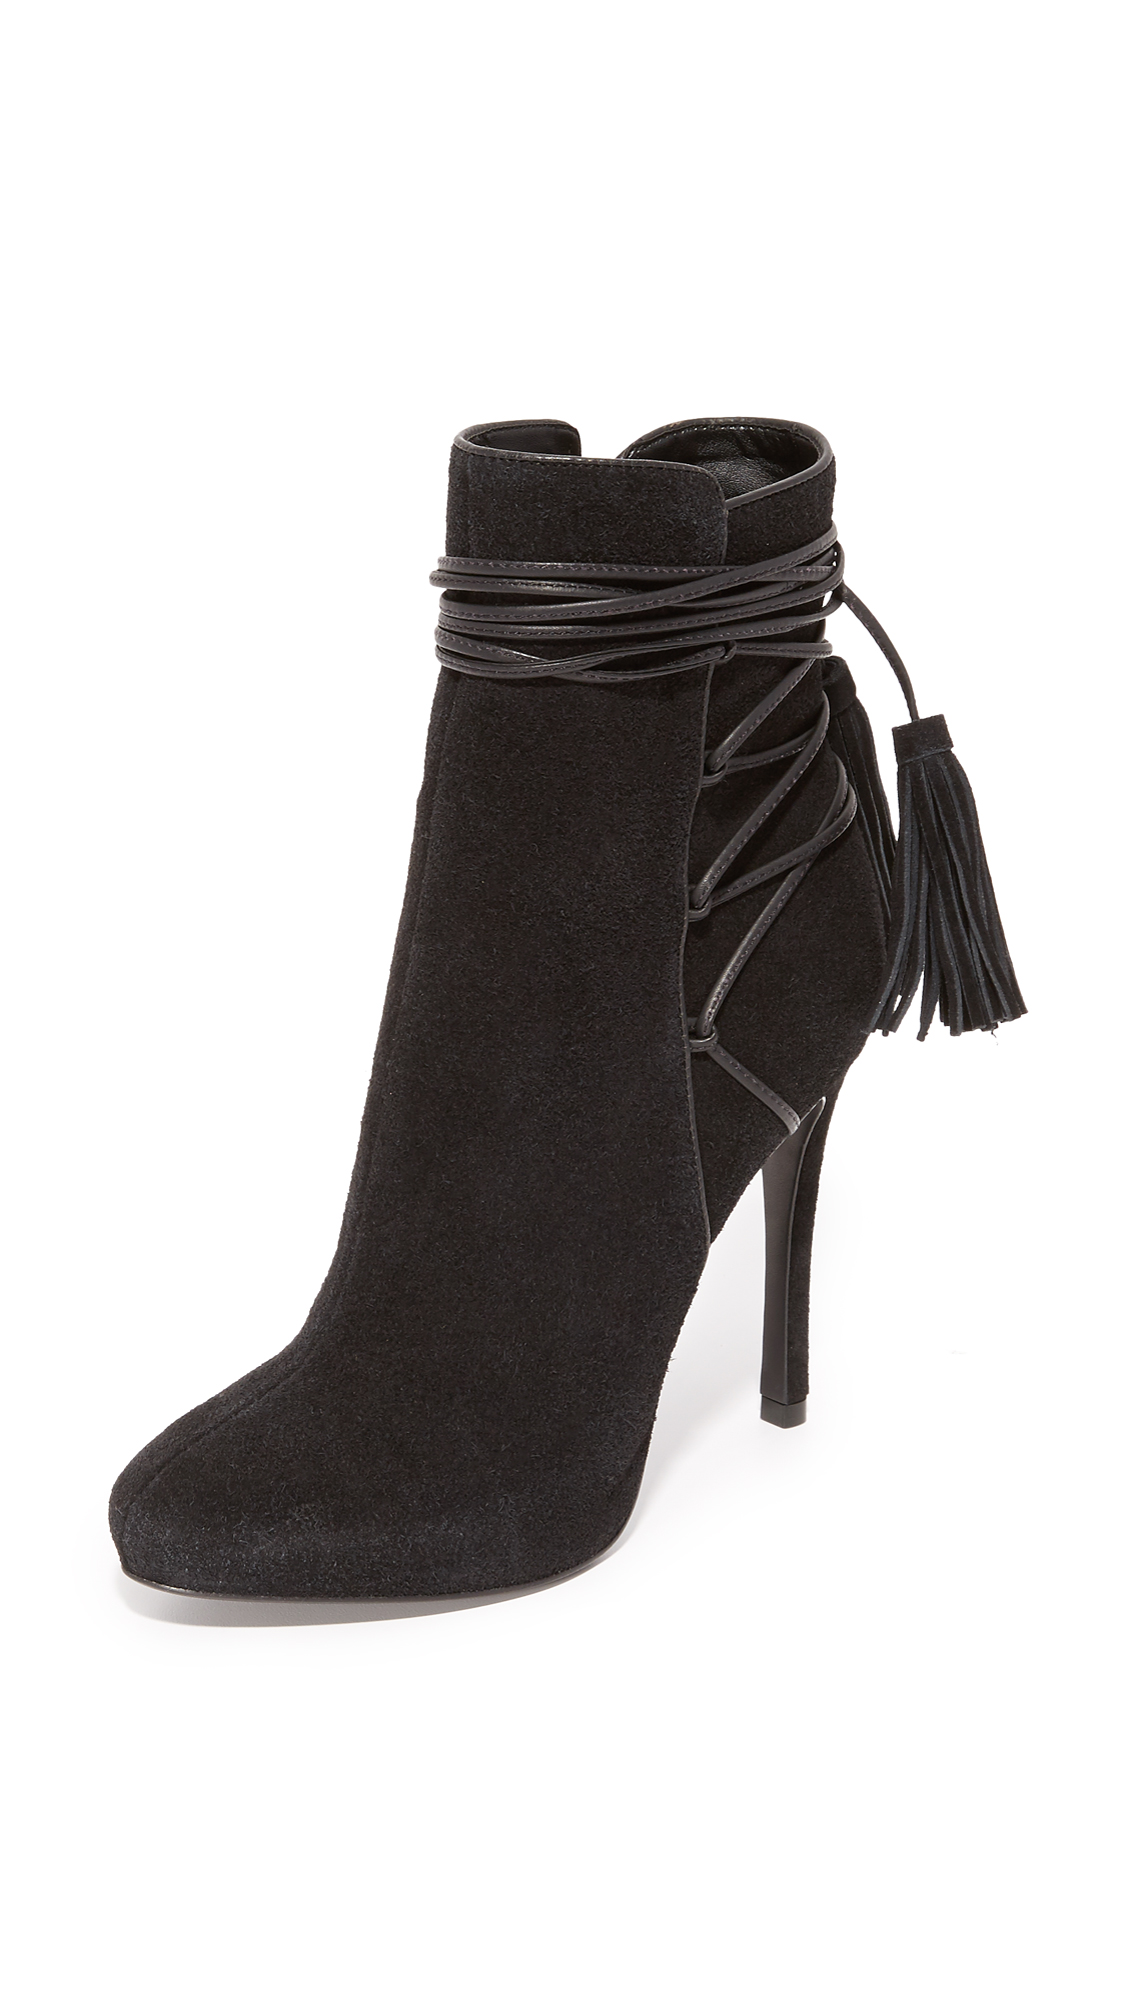 Schutz Briella Booties - Black